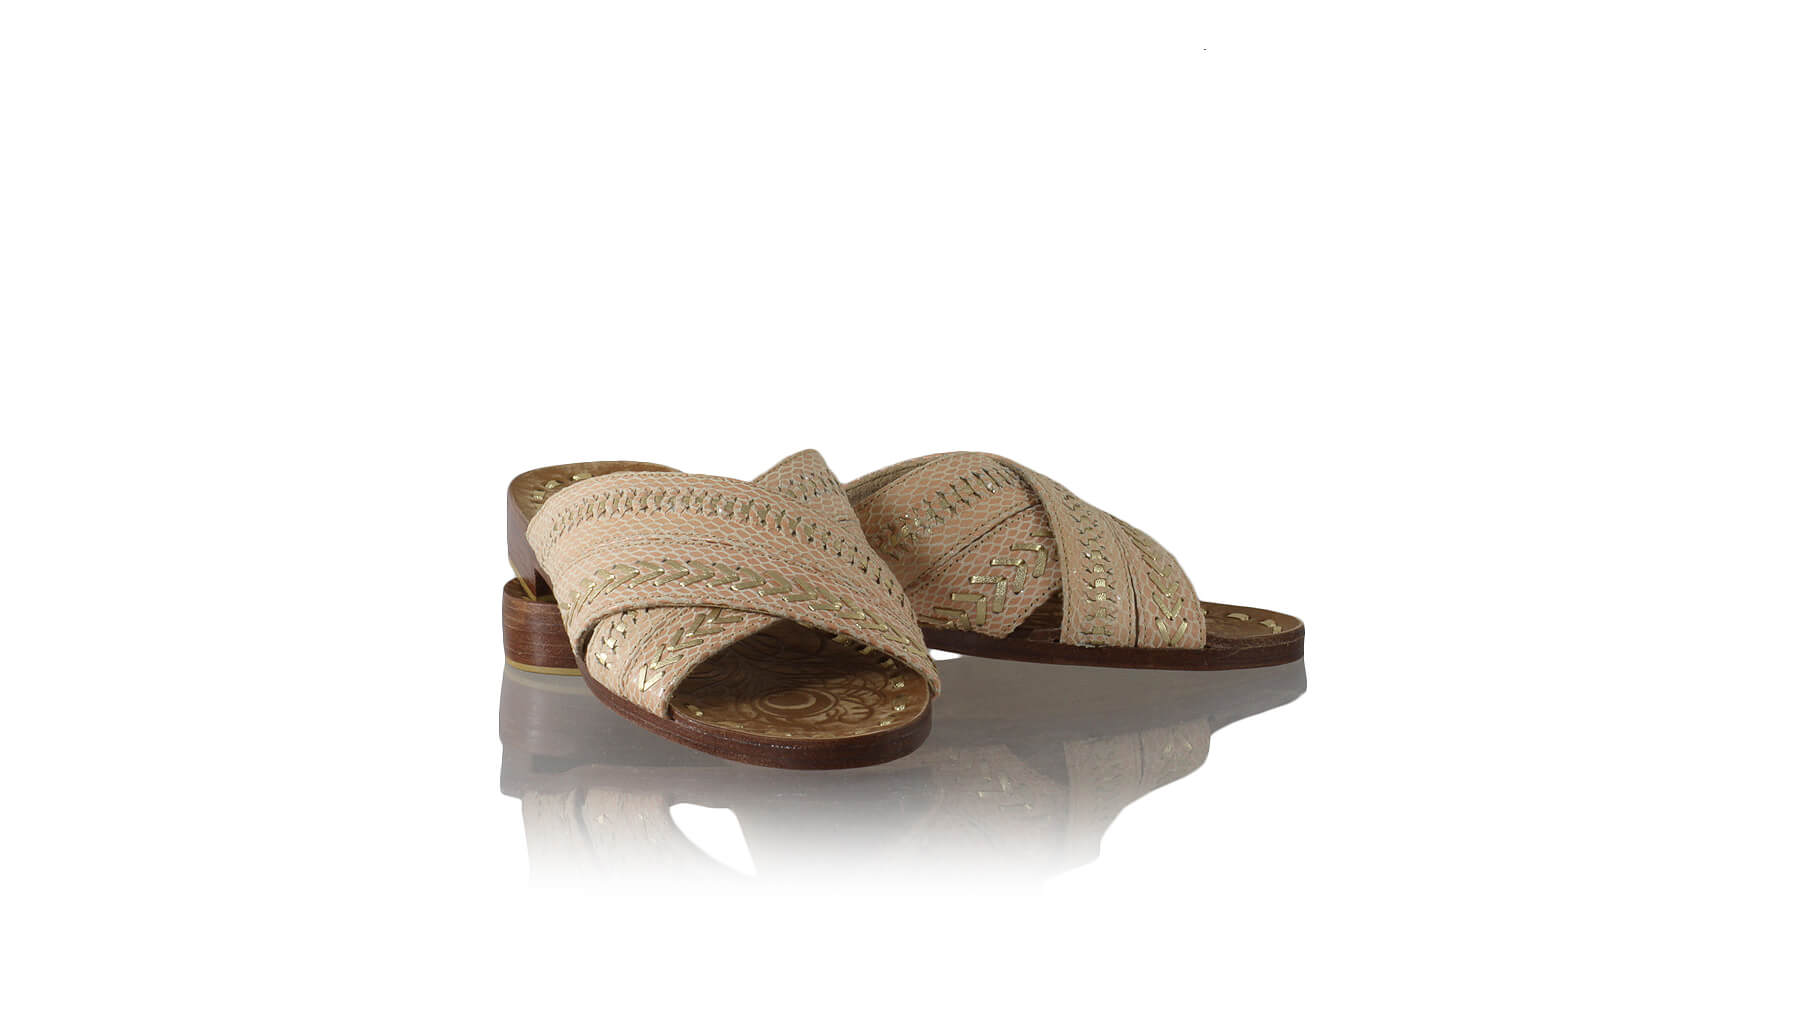 Leather-shoes-Gili 20mm Flat - Salmon Pink Snake Print & Gold-sandals flat-NILUH DJELANTIK-NILUH DJELANTIK